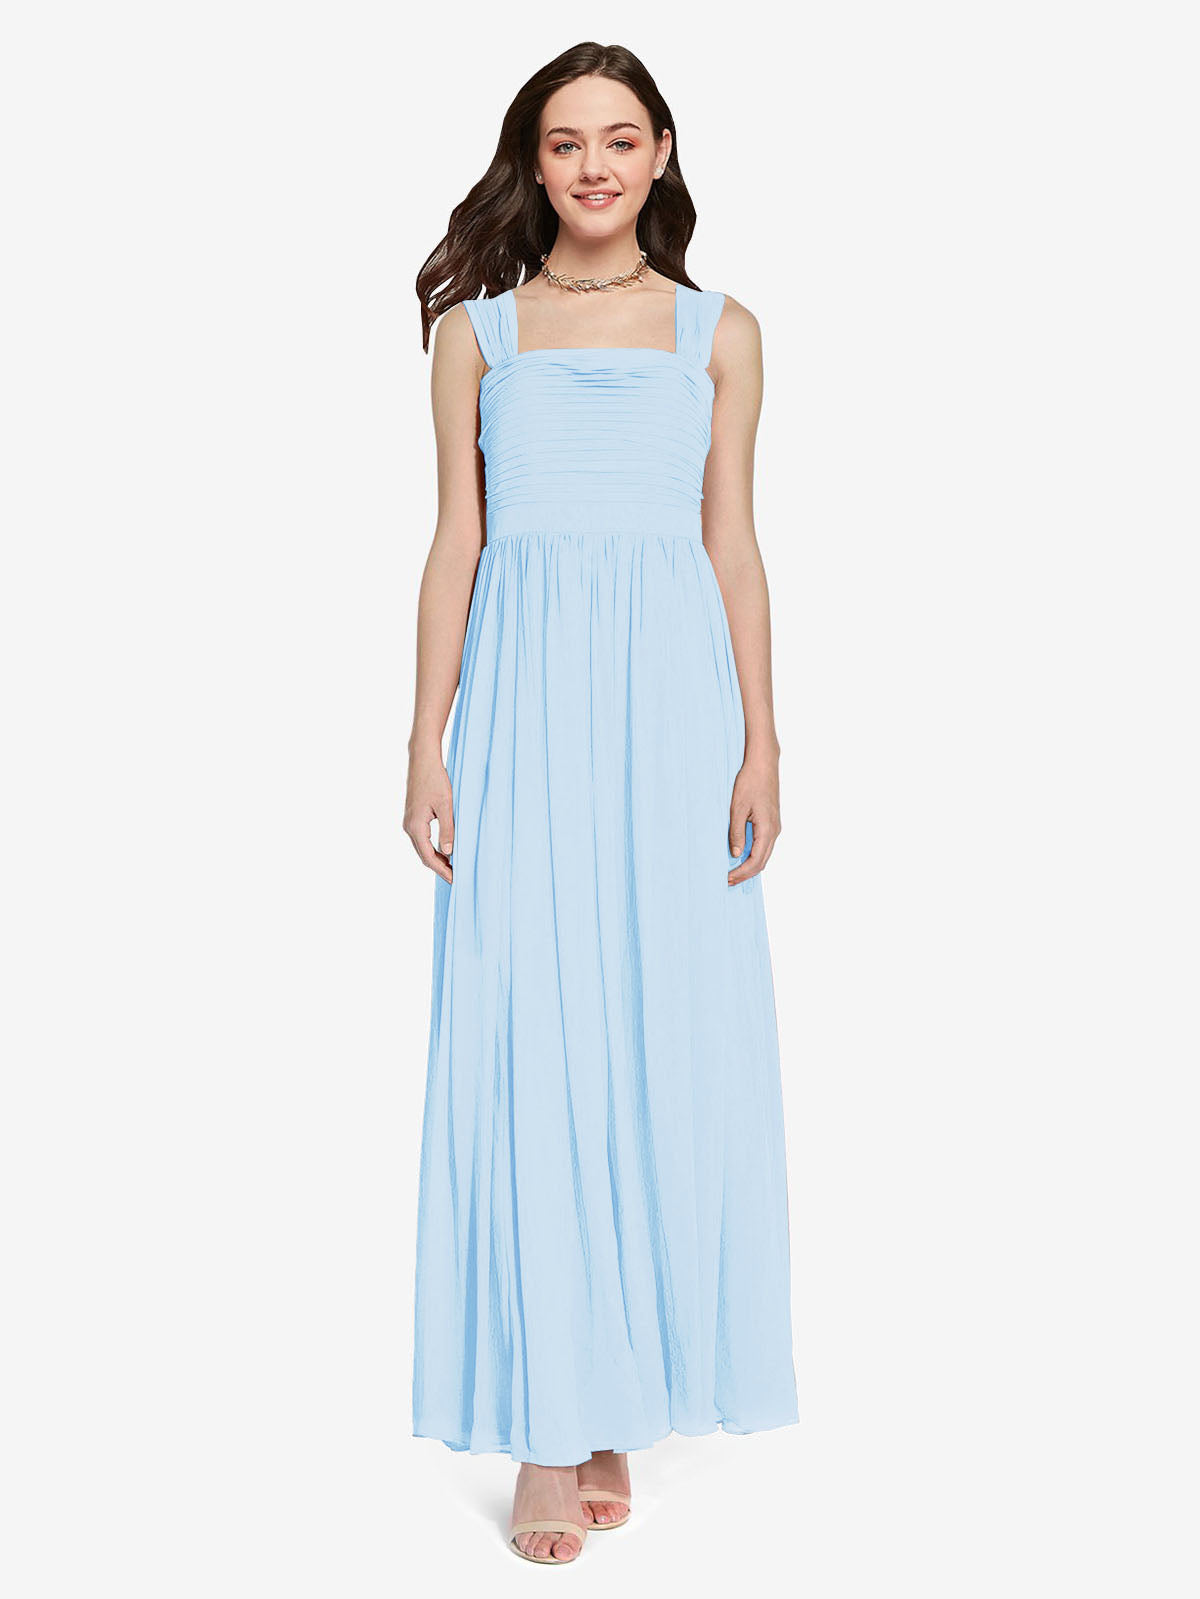 Long A-Line Square Sleeveless Light Sky Blue Chiffon Bridesmaid Dress Aldridge